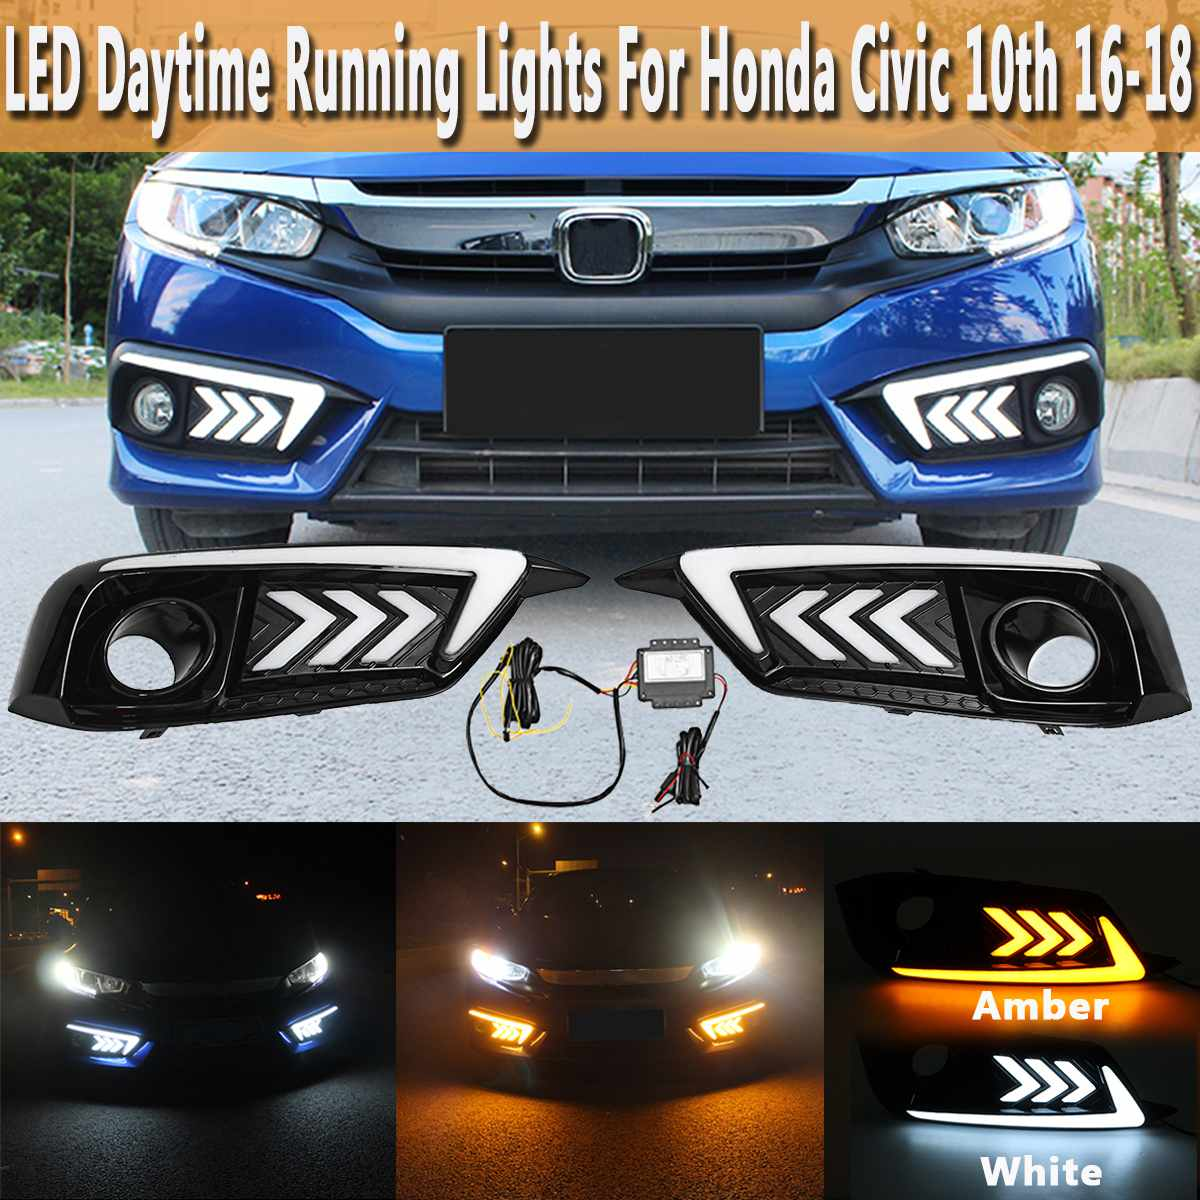 White and Amber Color LED DRL Daytime Running Lamps Turn Signal Fog Lights For Honda for Civic 10th 2016-2018